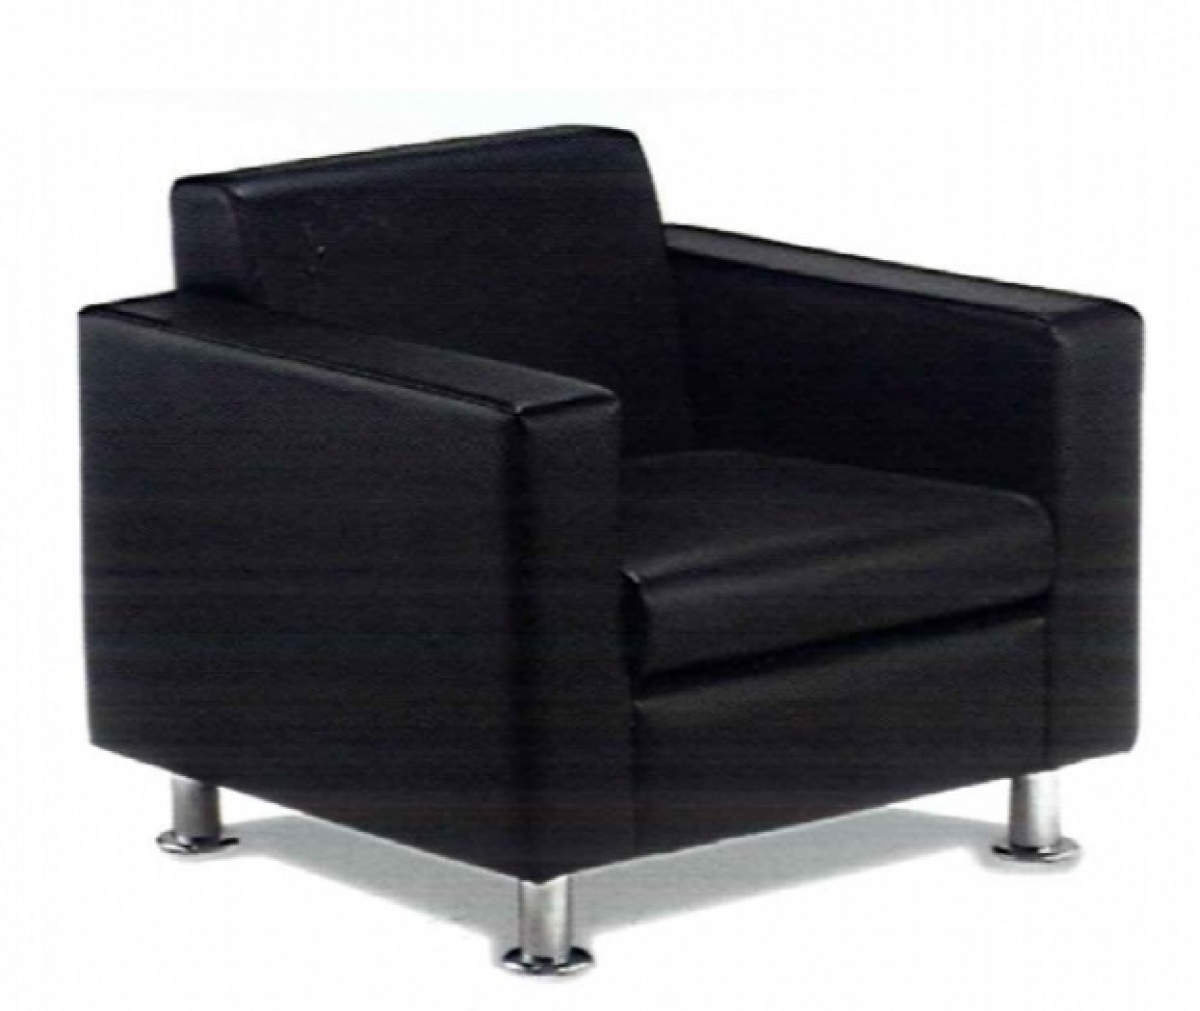 Single Seater Sofa (Mesh/Fabric) Model: H-TV1 – Furnitures Malaysia